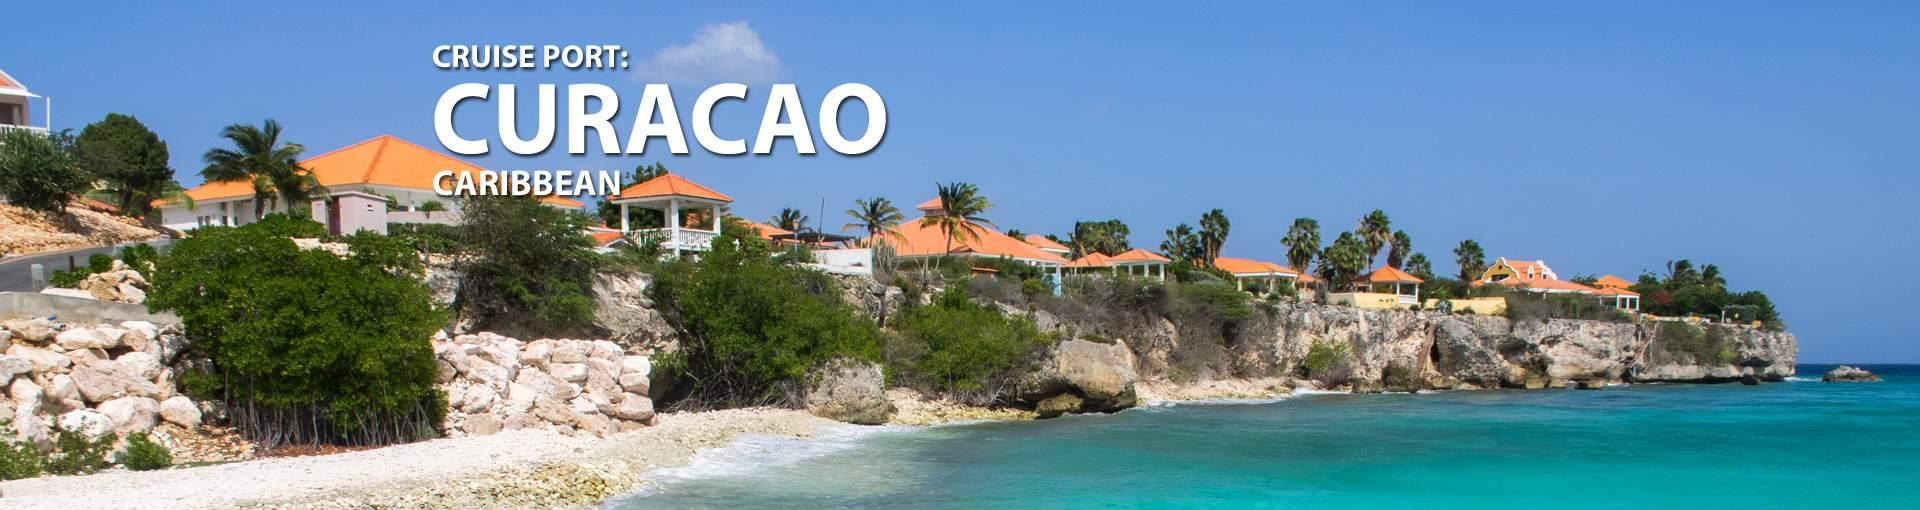 Cruises to Curacao, Caribbean